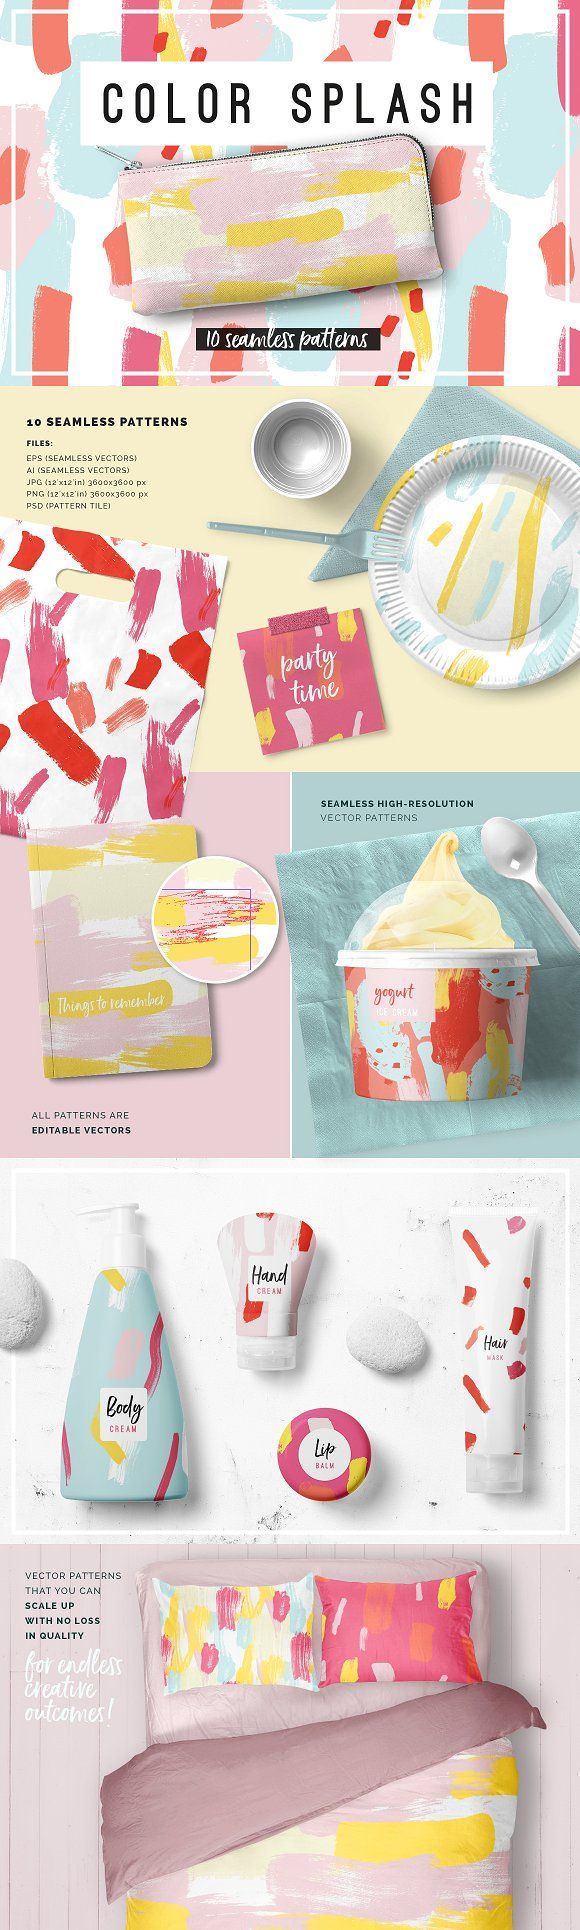 Color Splash Patterns by Youandigraphics on @creativemarket